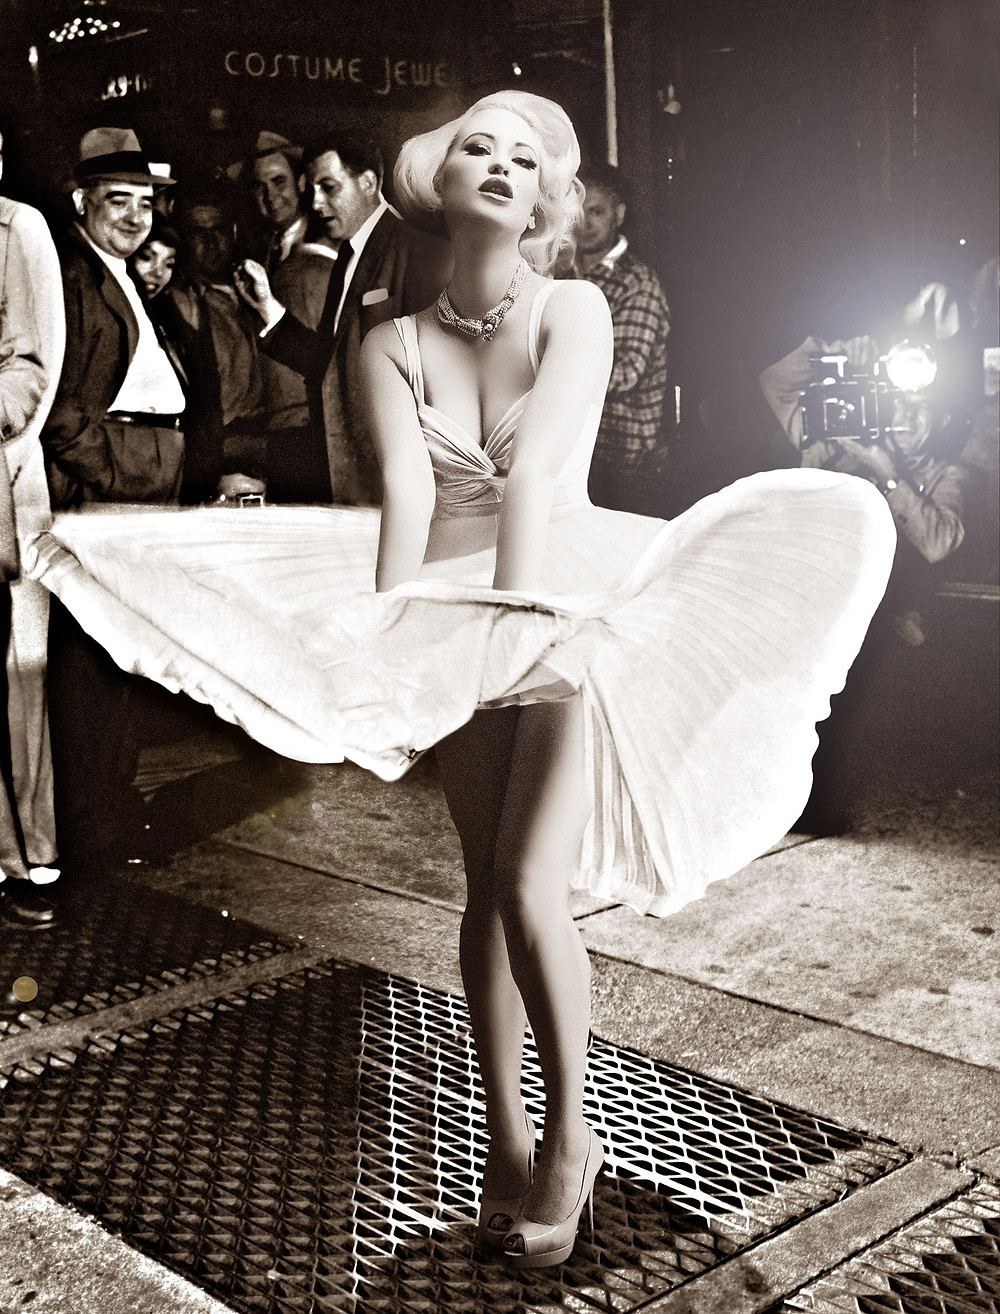 Marilyn Monroe Cosplay Pinup | By Chrissy Sparks at DOLLHOUSE